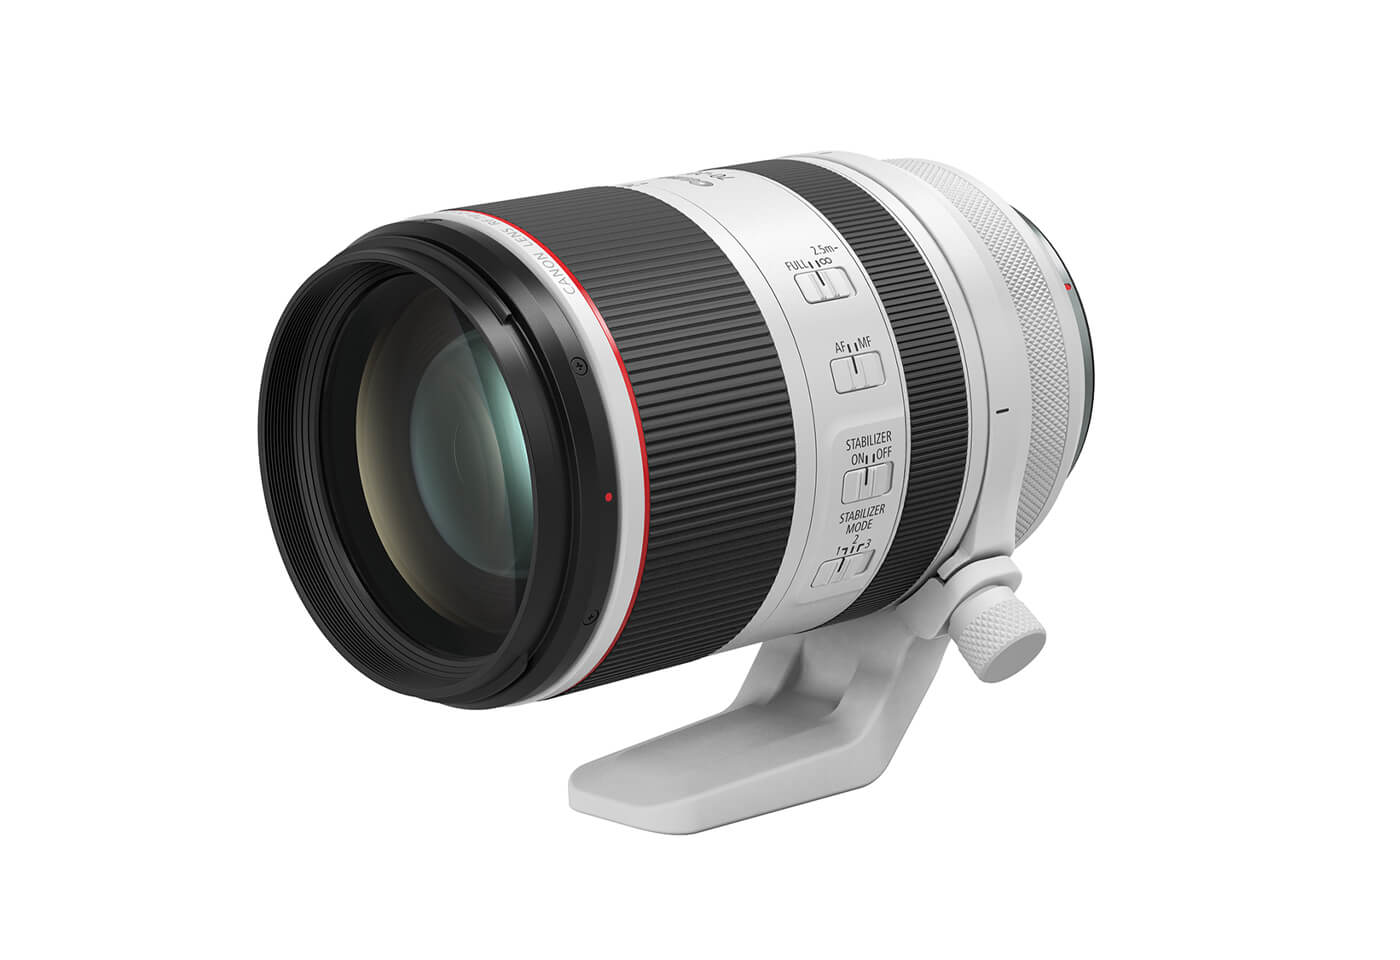 Product image of RF 70-200mm f2.8 L IS USM front face